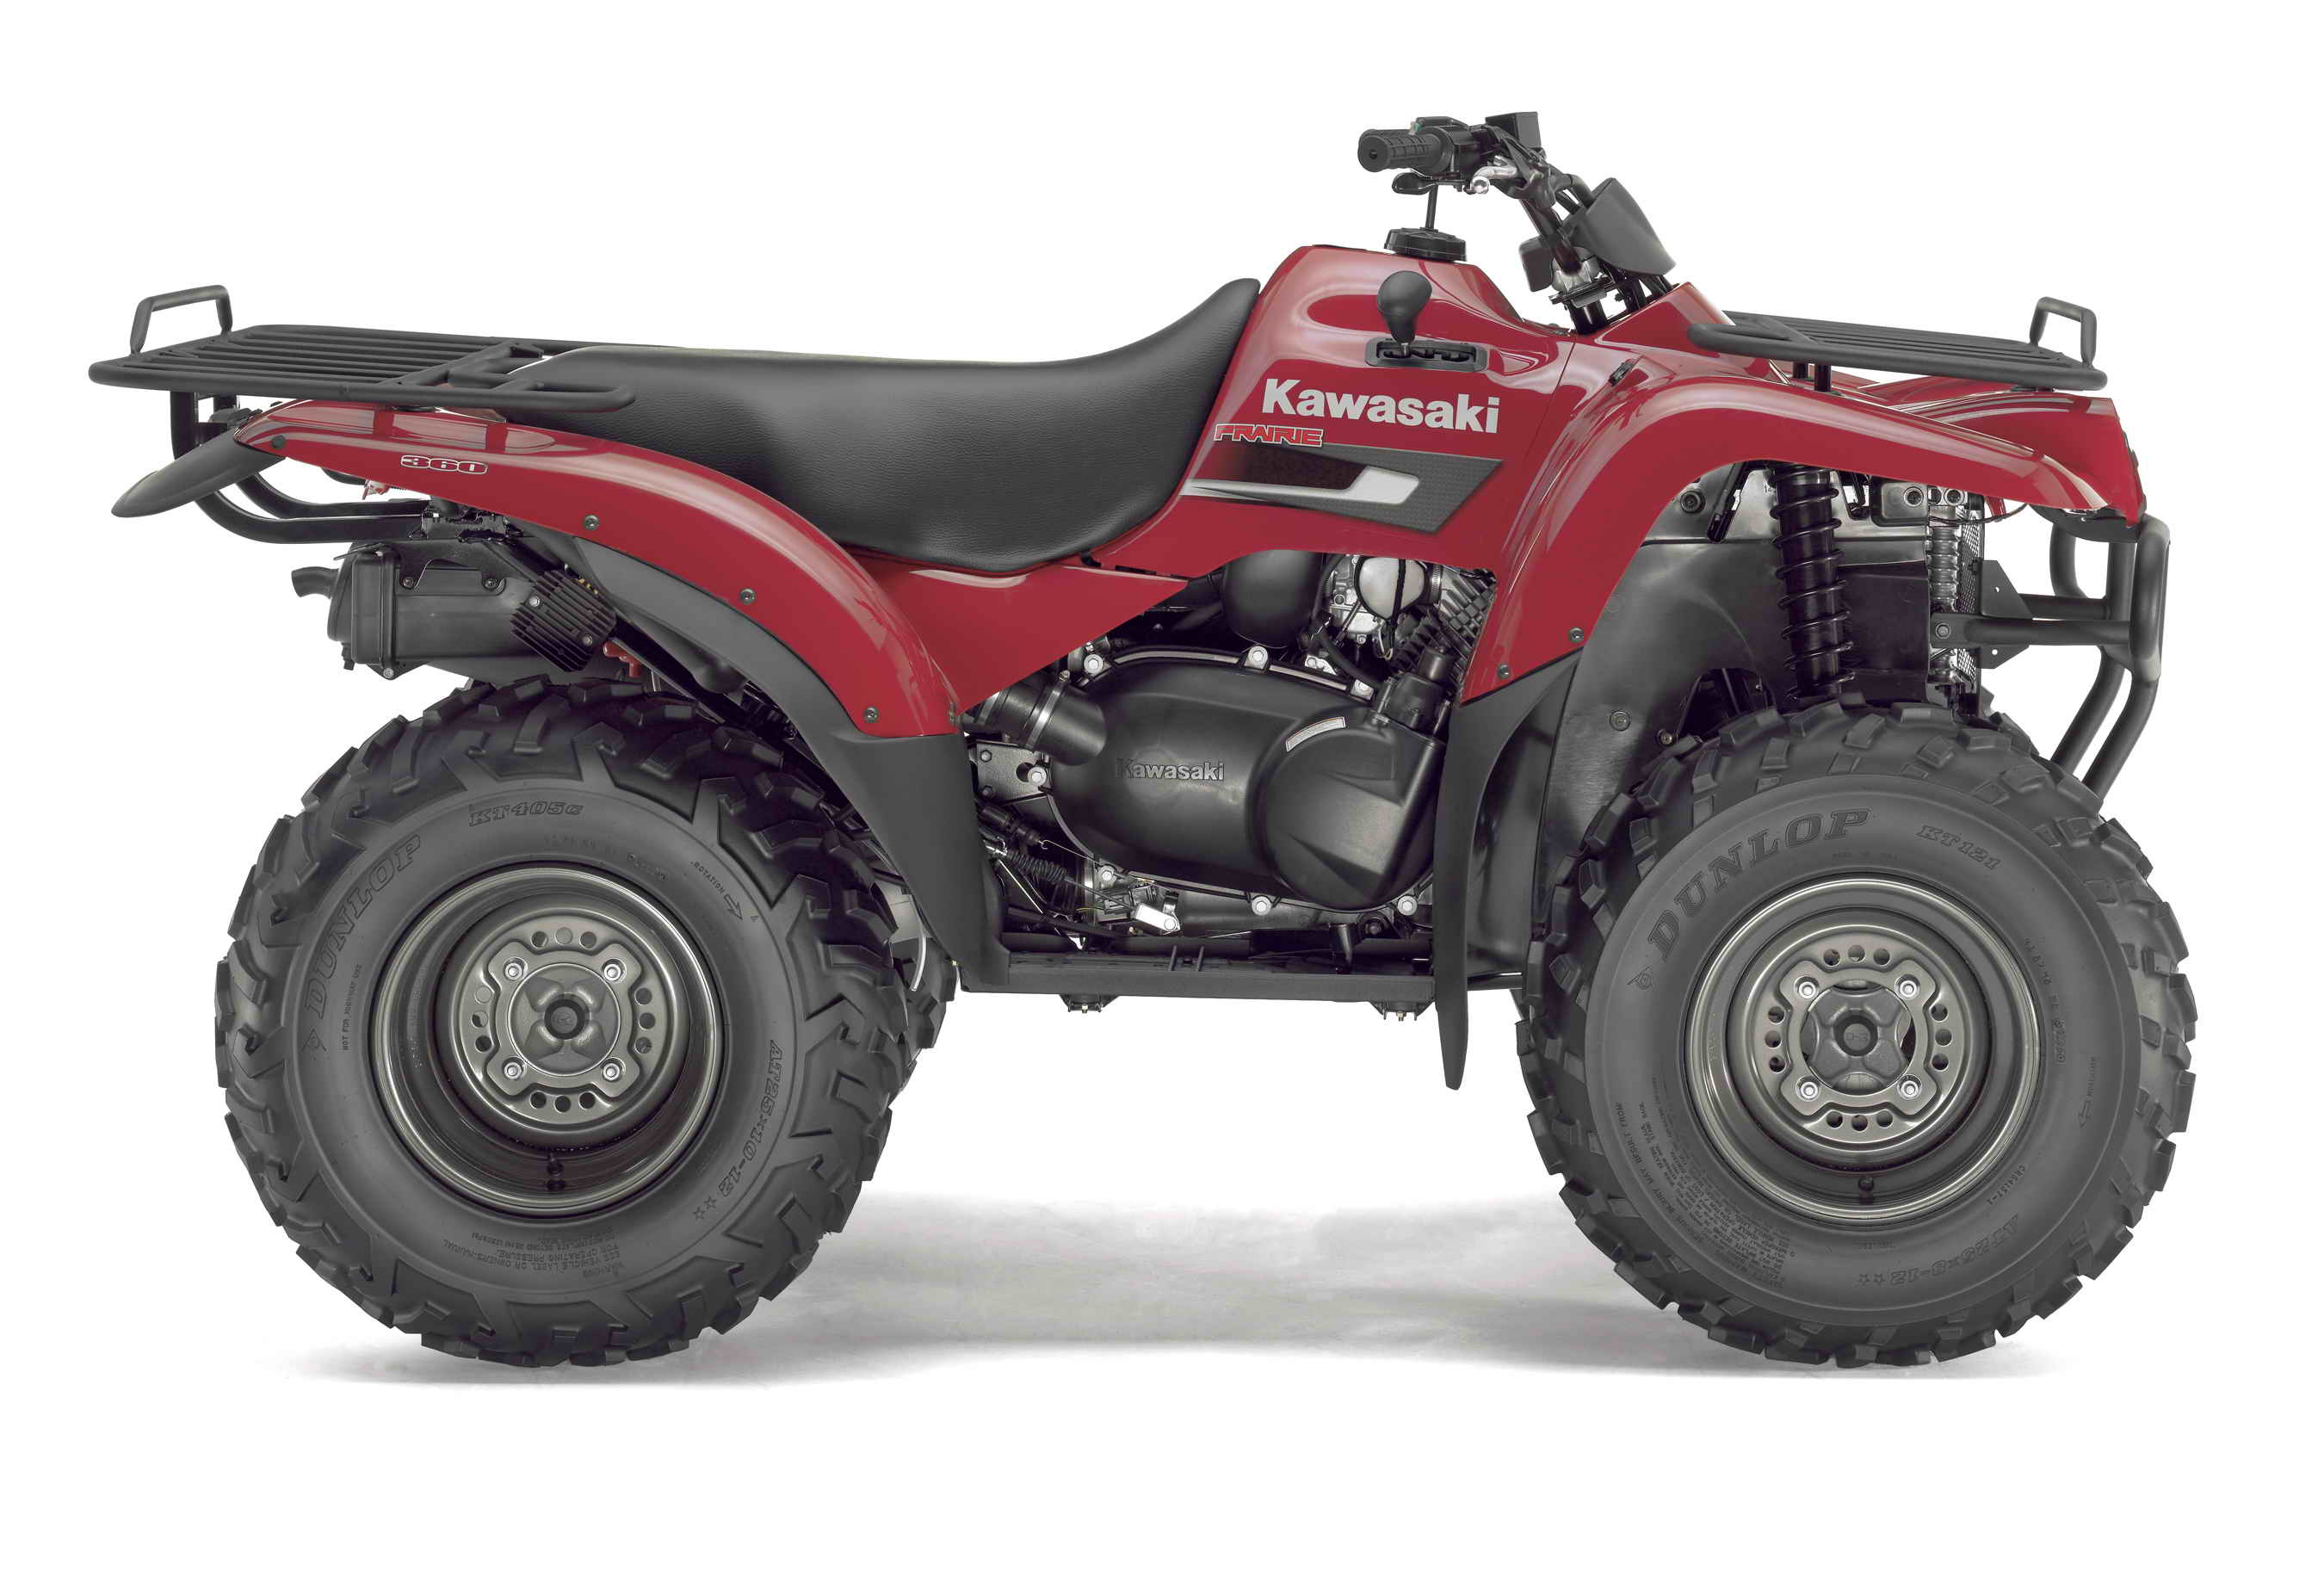 2007 Kawasaki Prairie 360 | Top Speed